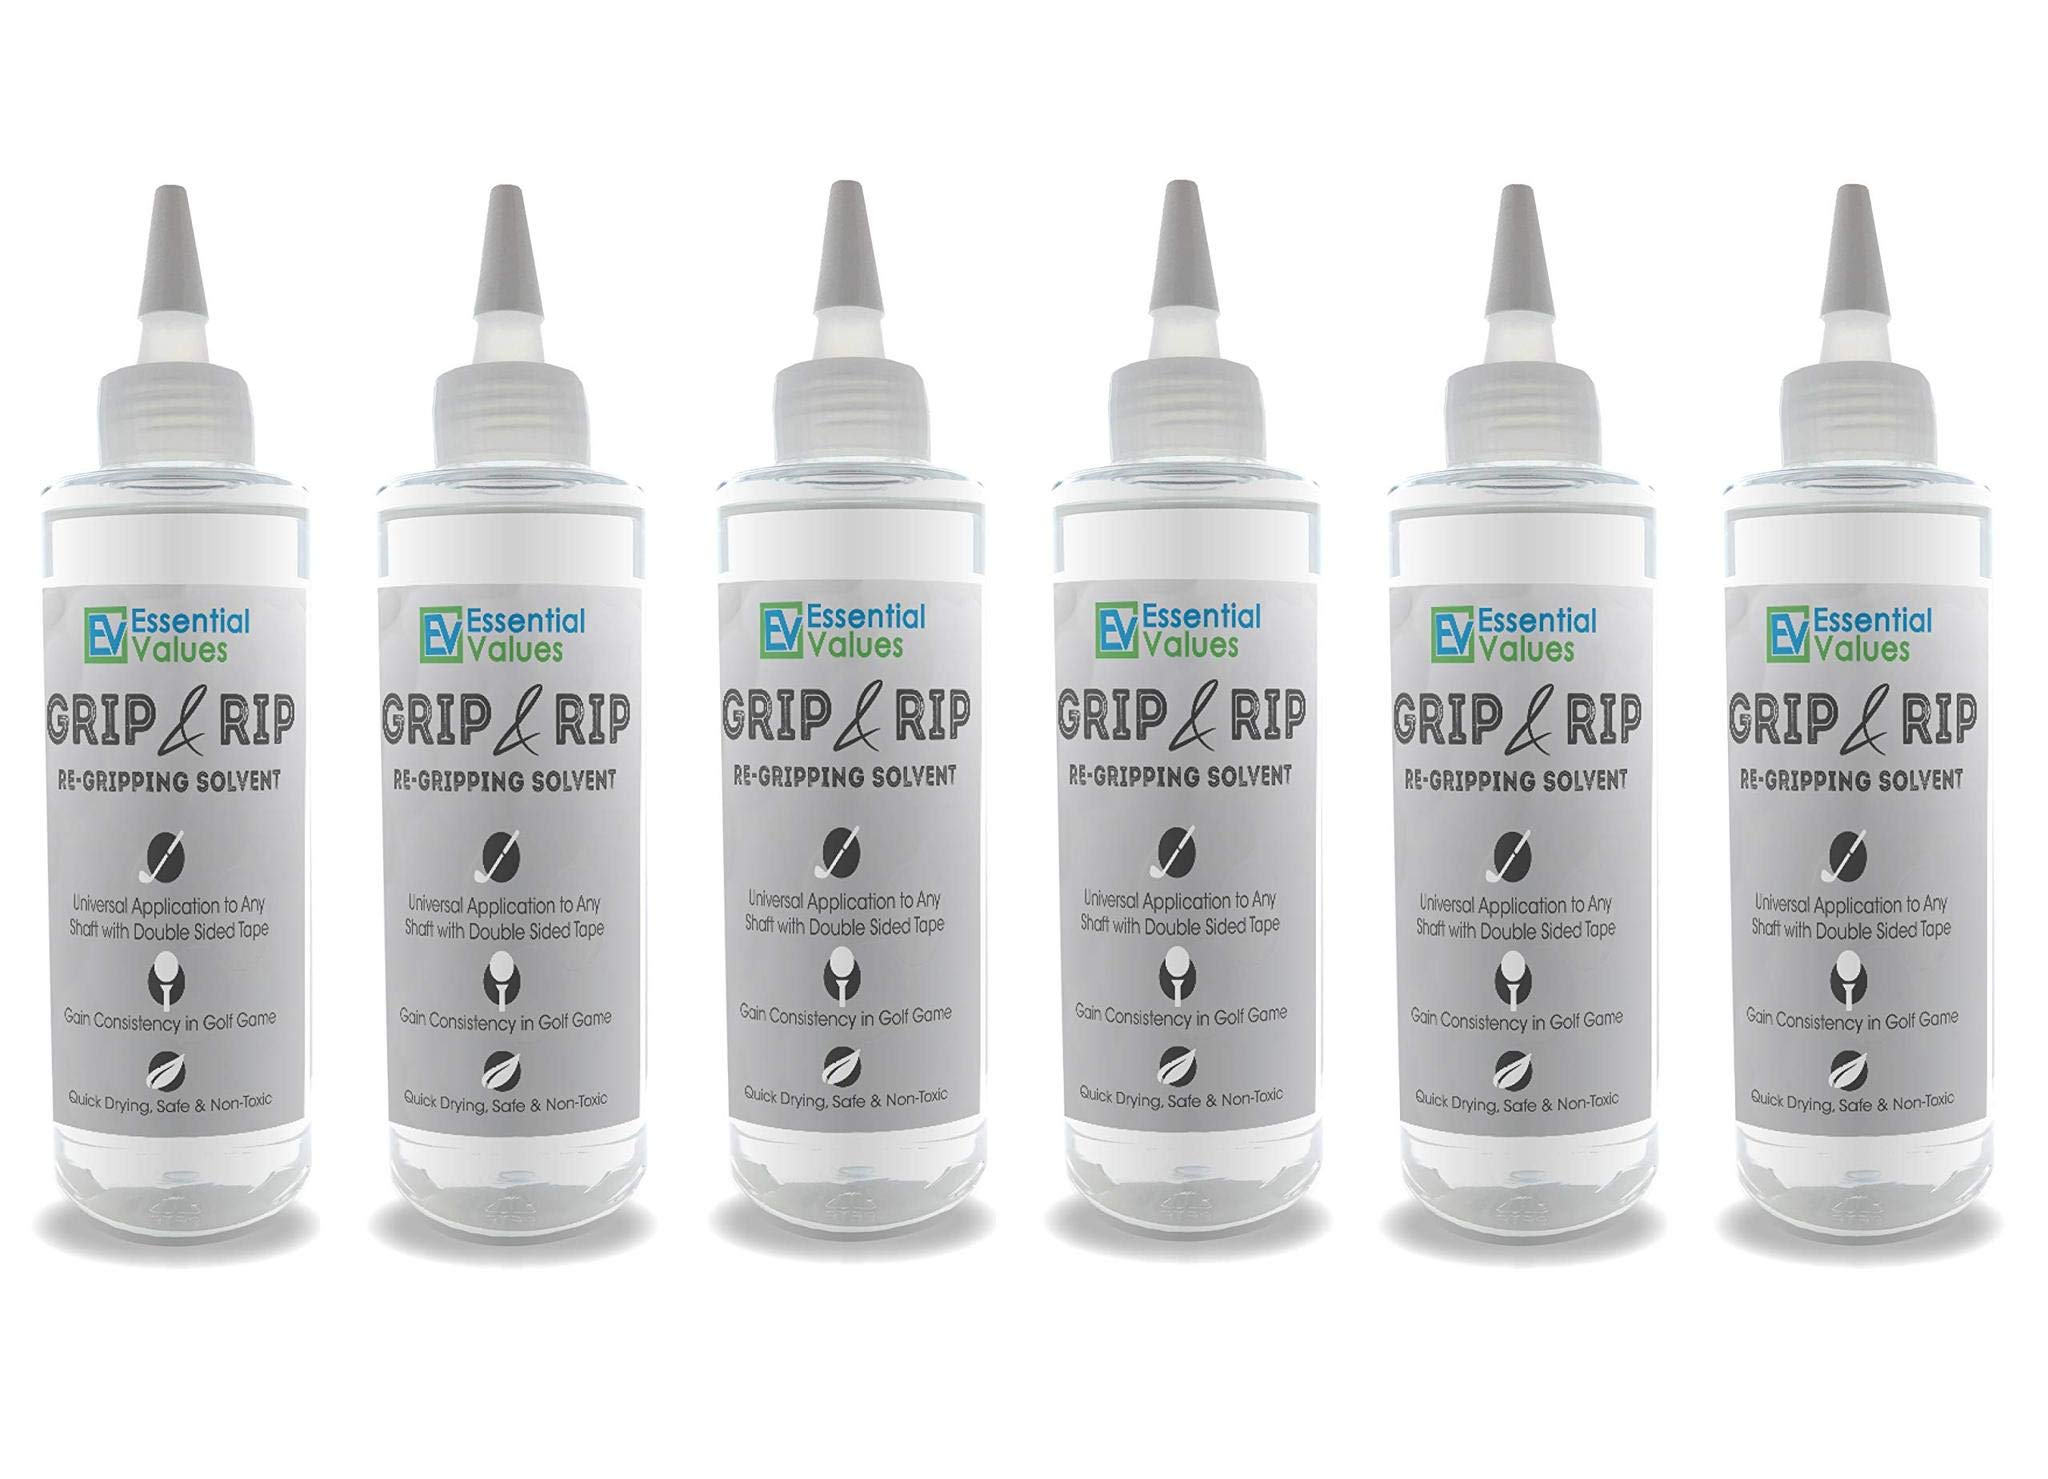 Essential Values 6 Pack Golf Regripping Solvent (8 Fl Oz), Double The Solution Compared to Others - Excellent for Quick & Easy Regripping of Golf Clubs - Made in USA by Essential Values